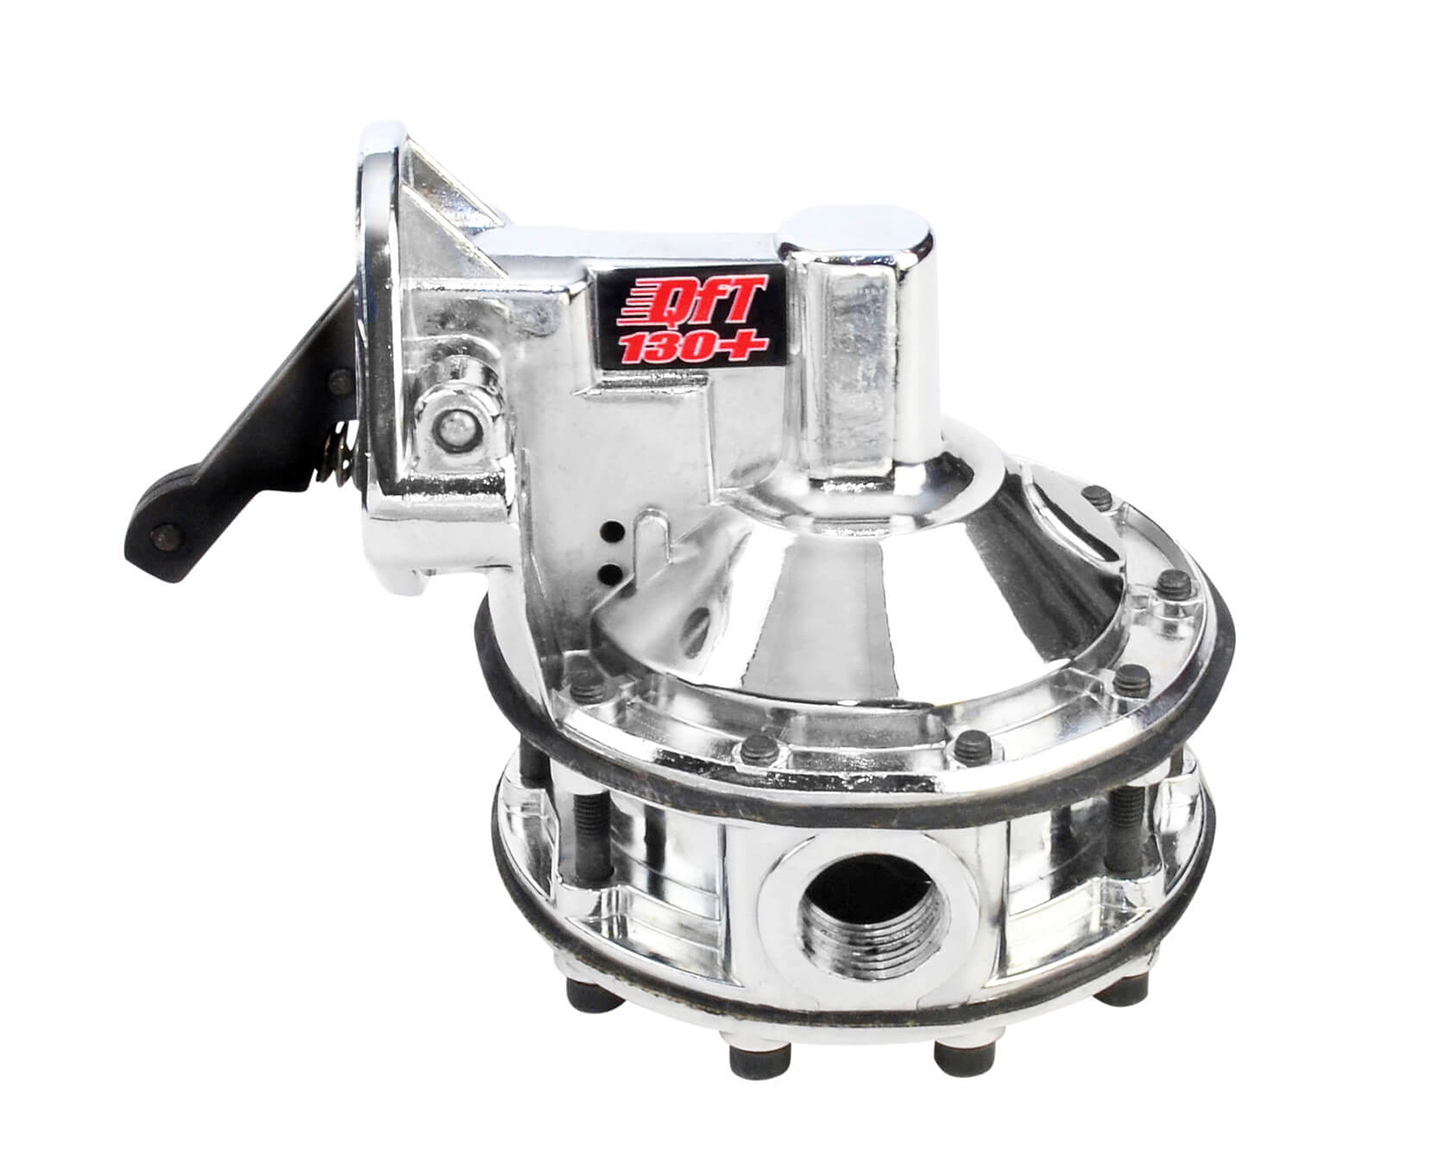 Quick Fuel 30-350-1QFT Fuel Pump, Mechanical, 130 Plus gph, 12-16 psi, 1/2 in NPT Female Inlet / Outlet, Aluminum, Polished, E85 / Gas / Methanol, Small Block Chevy, Each